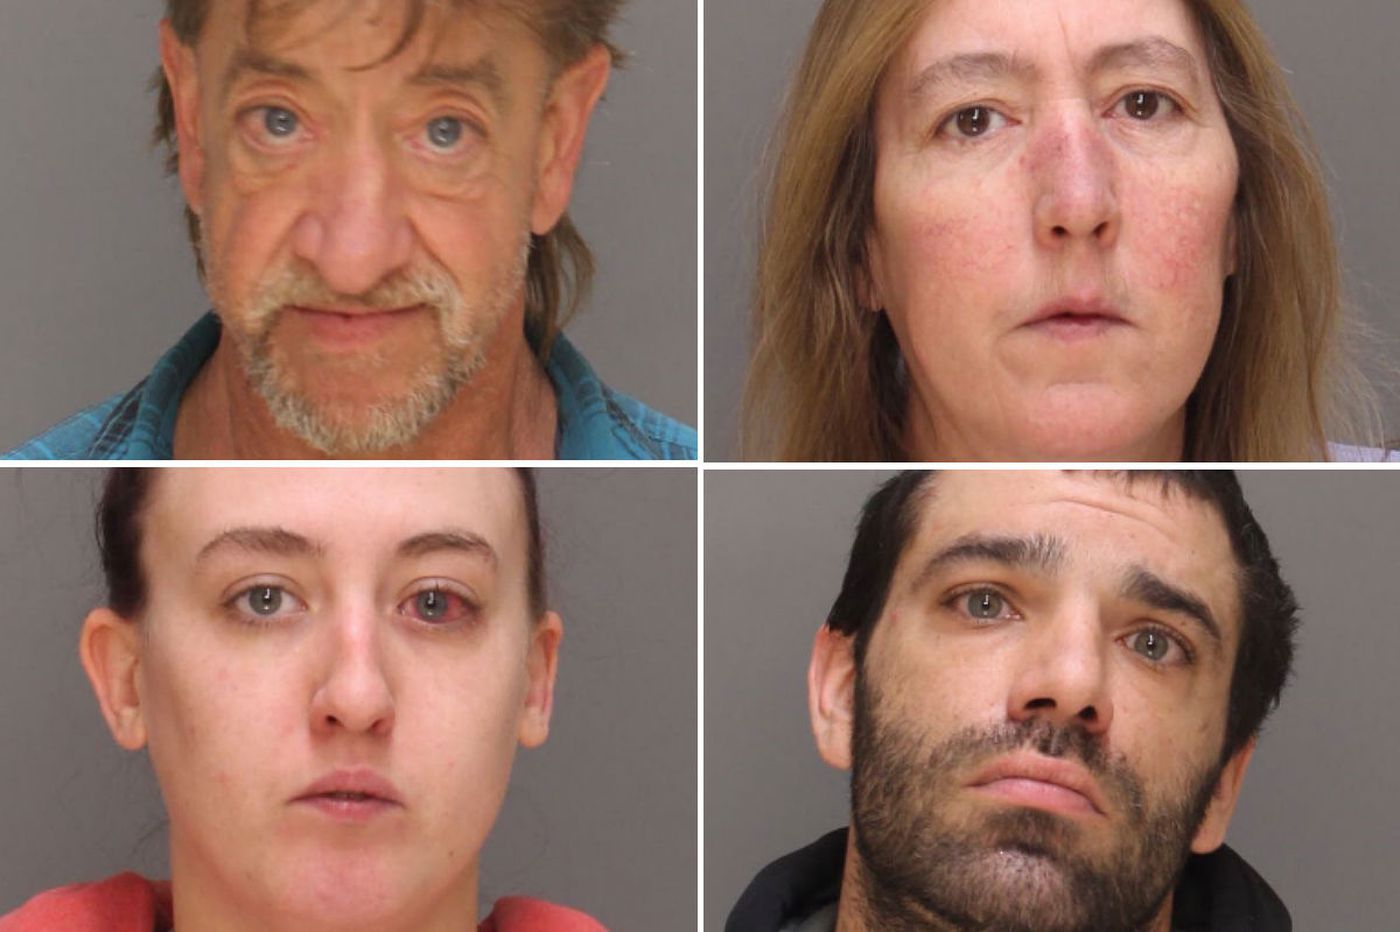 Bucks family stole money, left an 84-year-old man to die. Now they're going to prison.